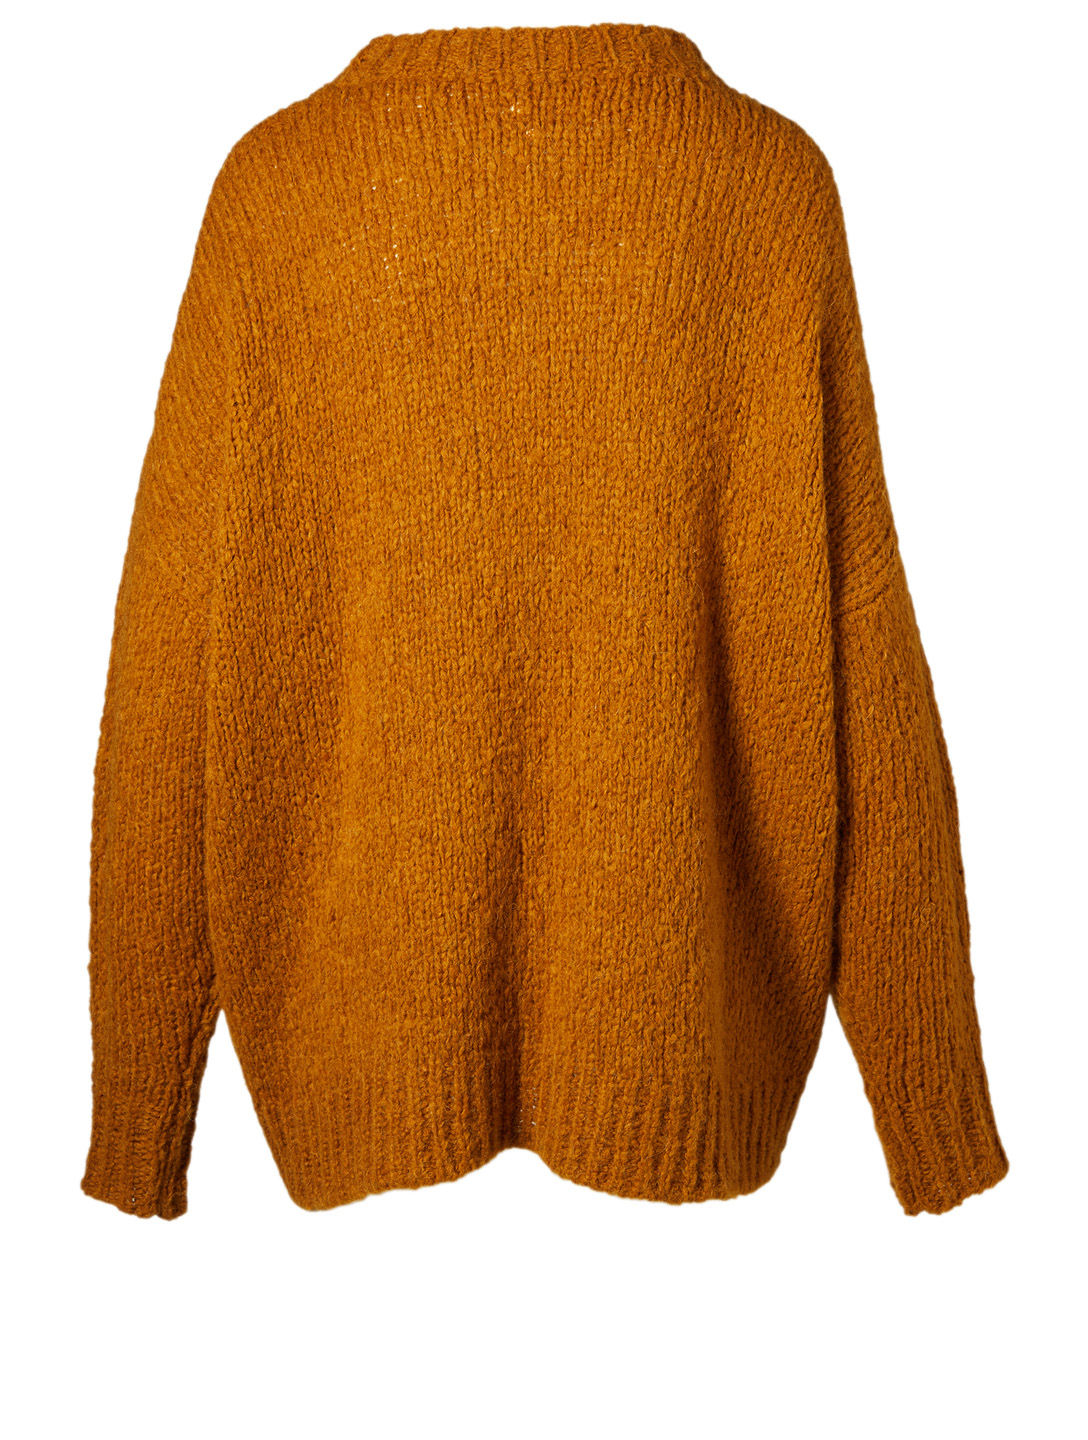 ISABEL MARANT ÉTOILE Sayers Alpaca And Wool Sweater Women's Yellow